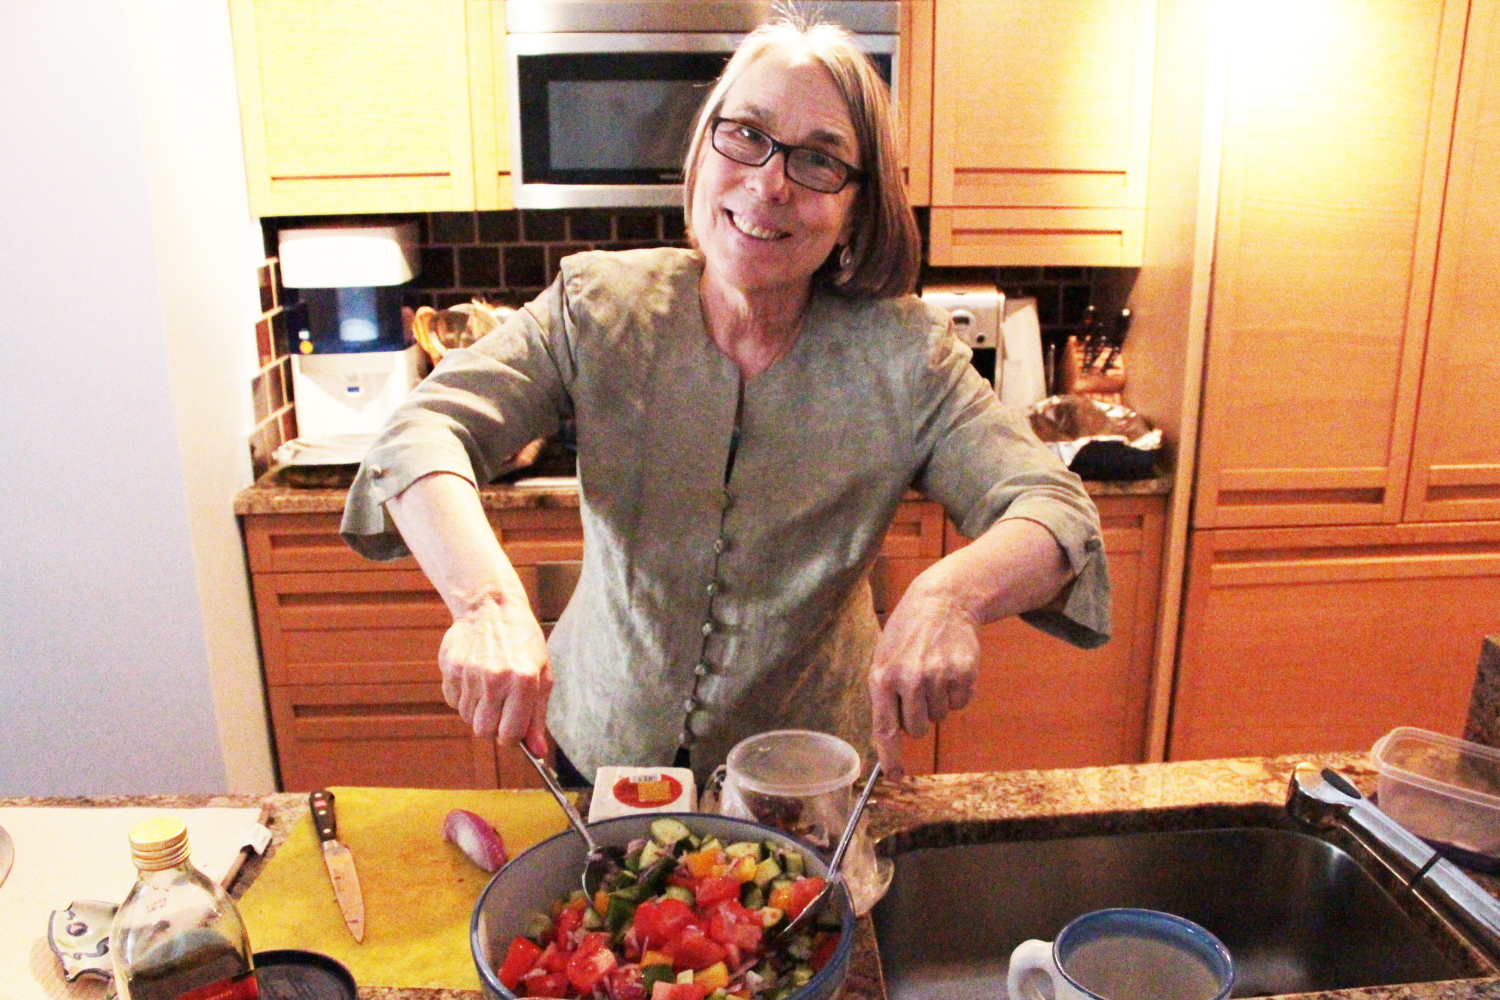 Aunt Cathy helped toss the Greek salad using a recipe that we recently made at a Greek cooking class girls night.